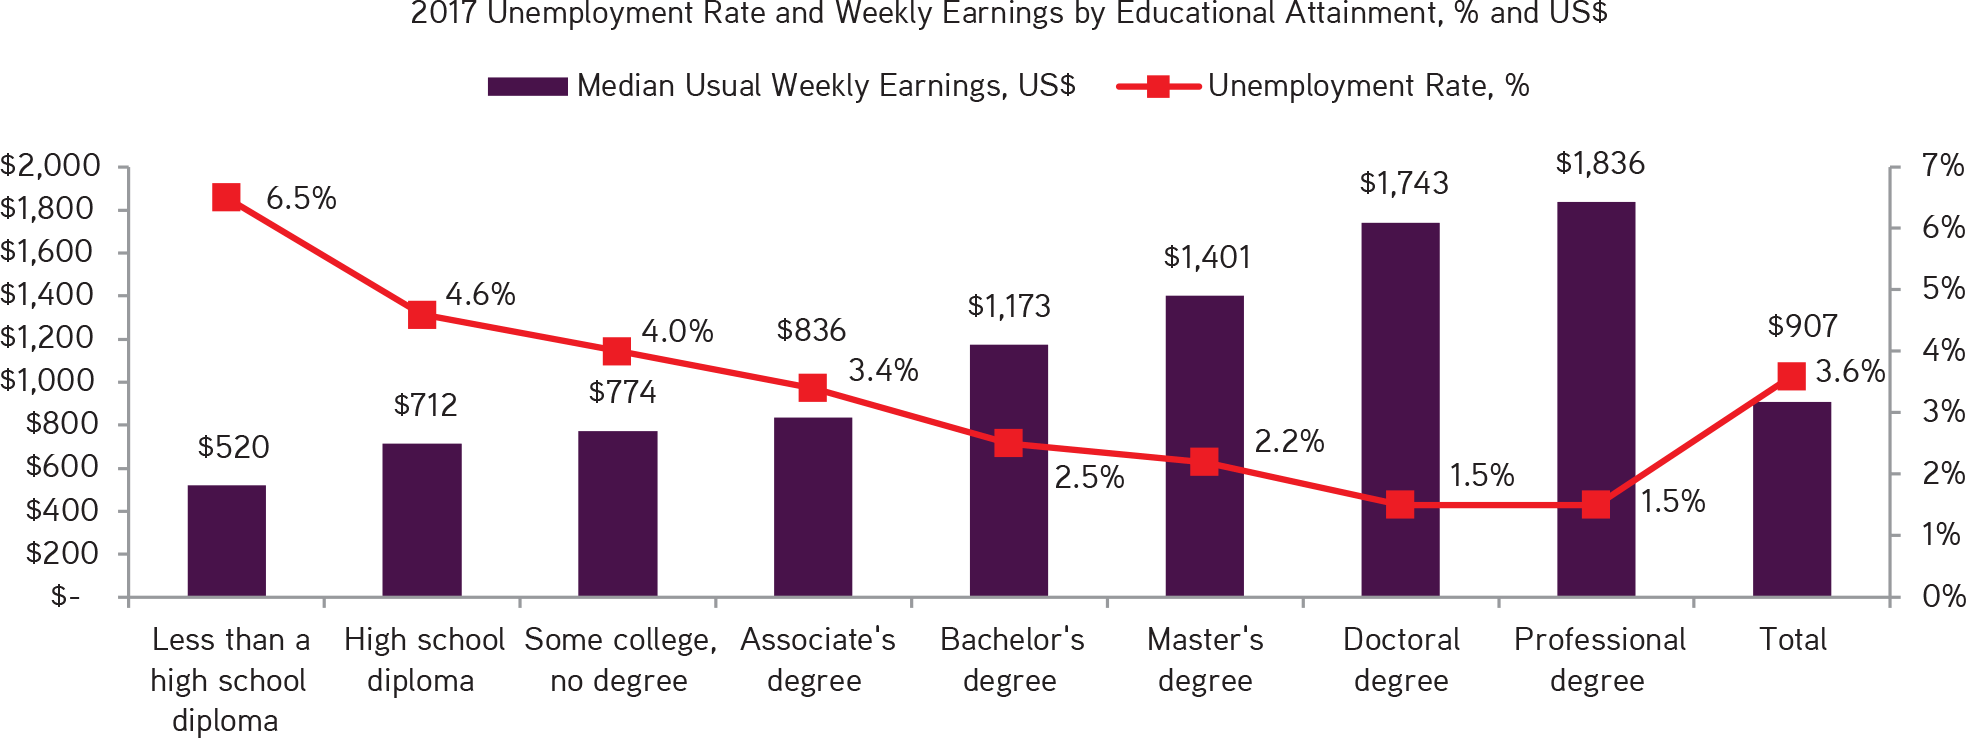 KKR | Henry McVey | New Playbook Required | The U.S. Unemployment Rate and Education Levels Go Hand-in-Hand